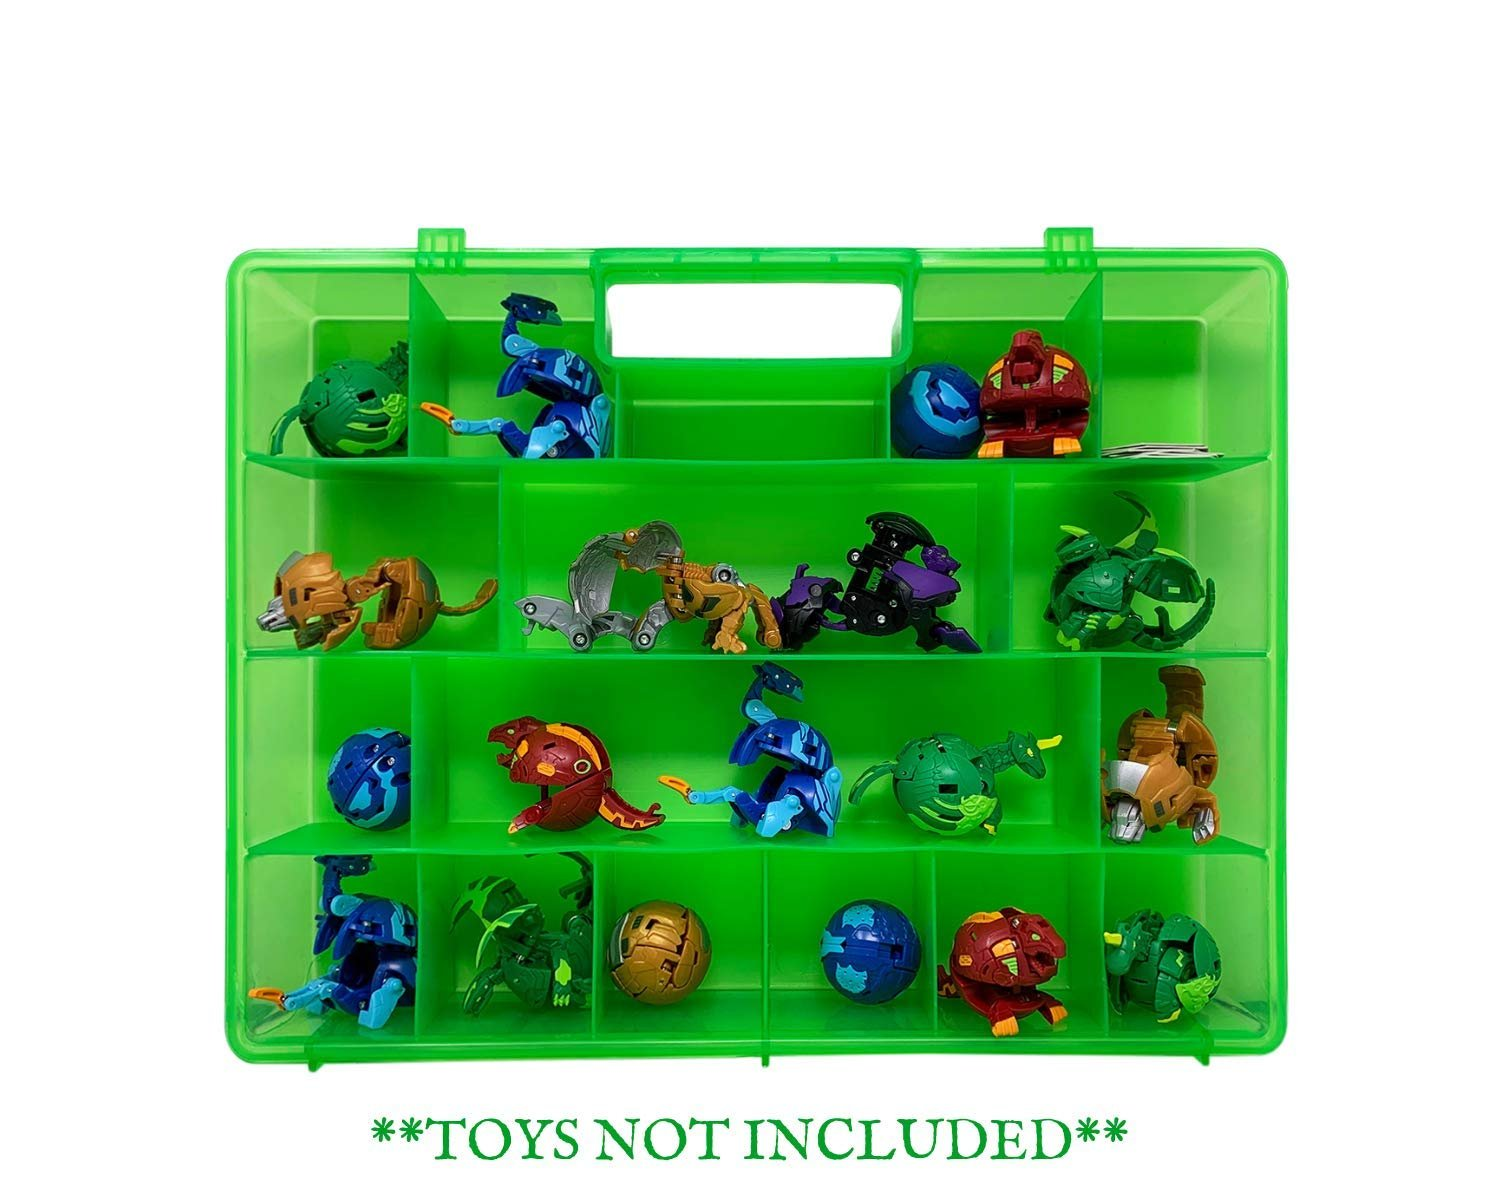 Life Made Better LMB's New & Improved Fun-Green Home Storage, Organization & Travel Case Compatible with Battle Bakugan Figures, Toy Accessories by LMB